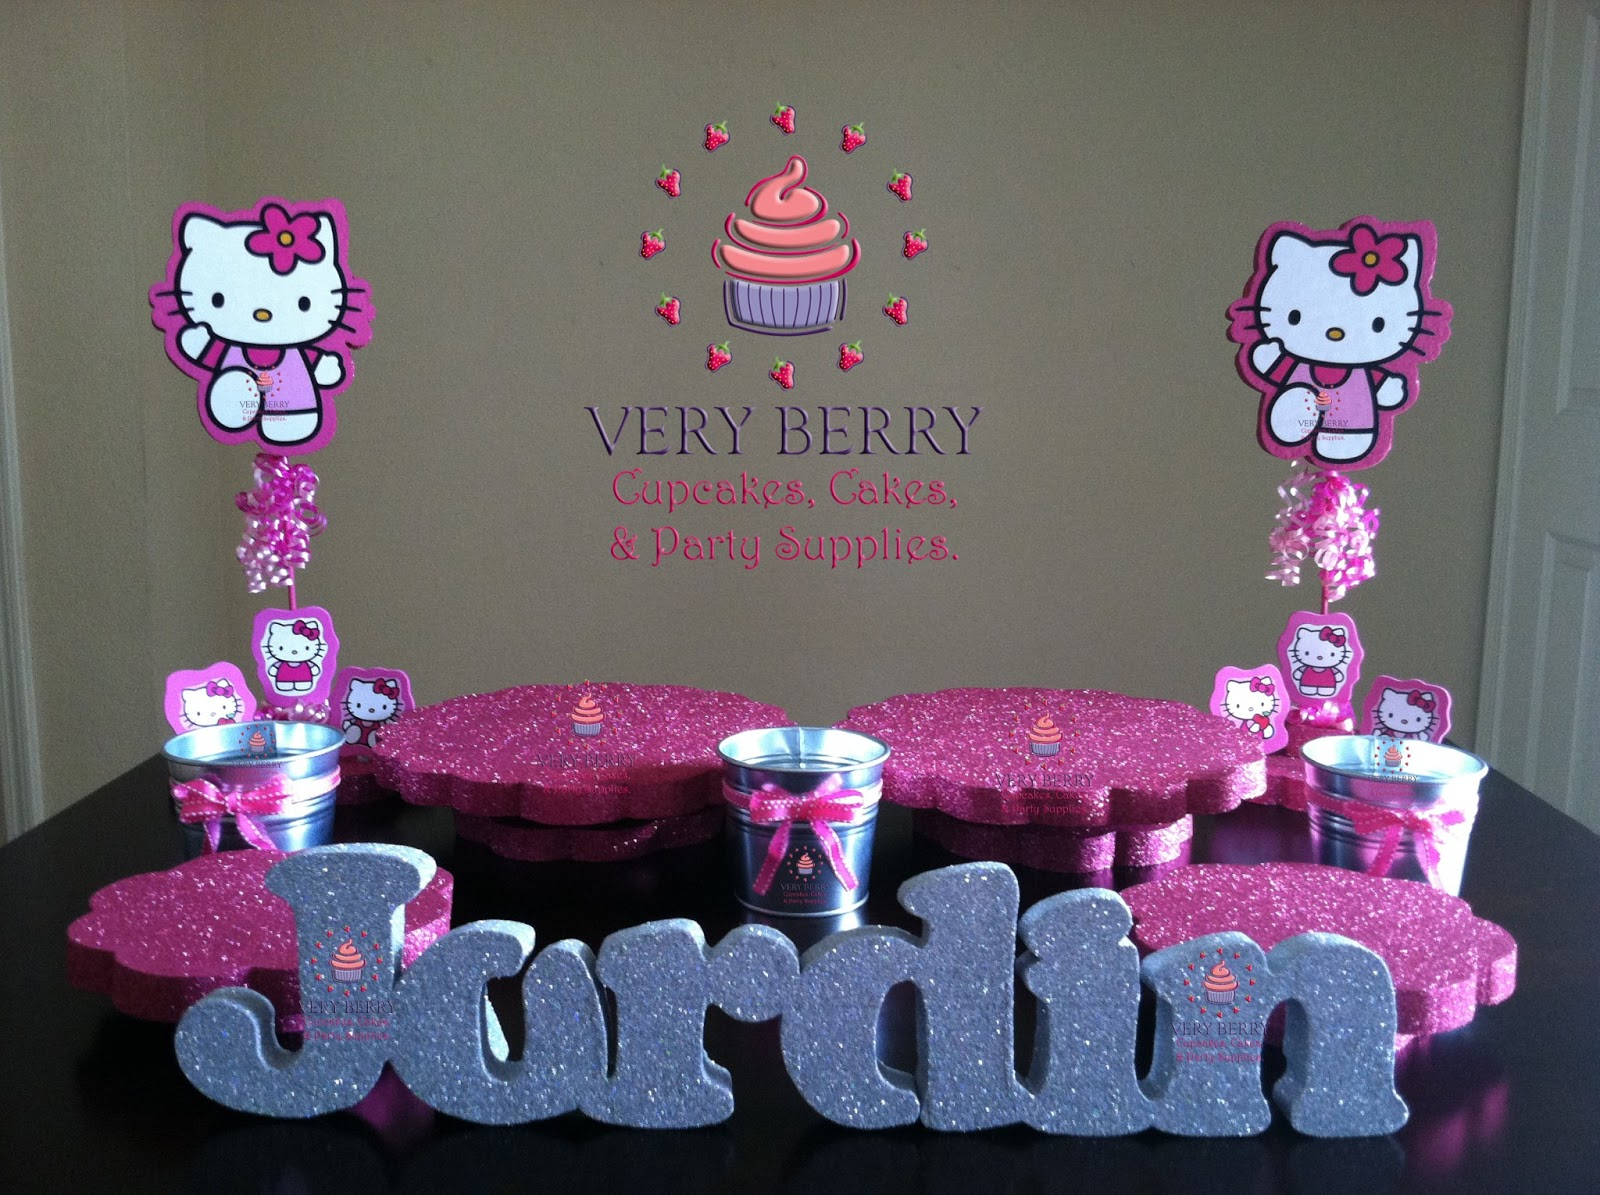 veryberry cupcakes hello kitty dessert table decoration. Black Bedroom Furniture Sets. Home Design Ideas